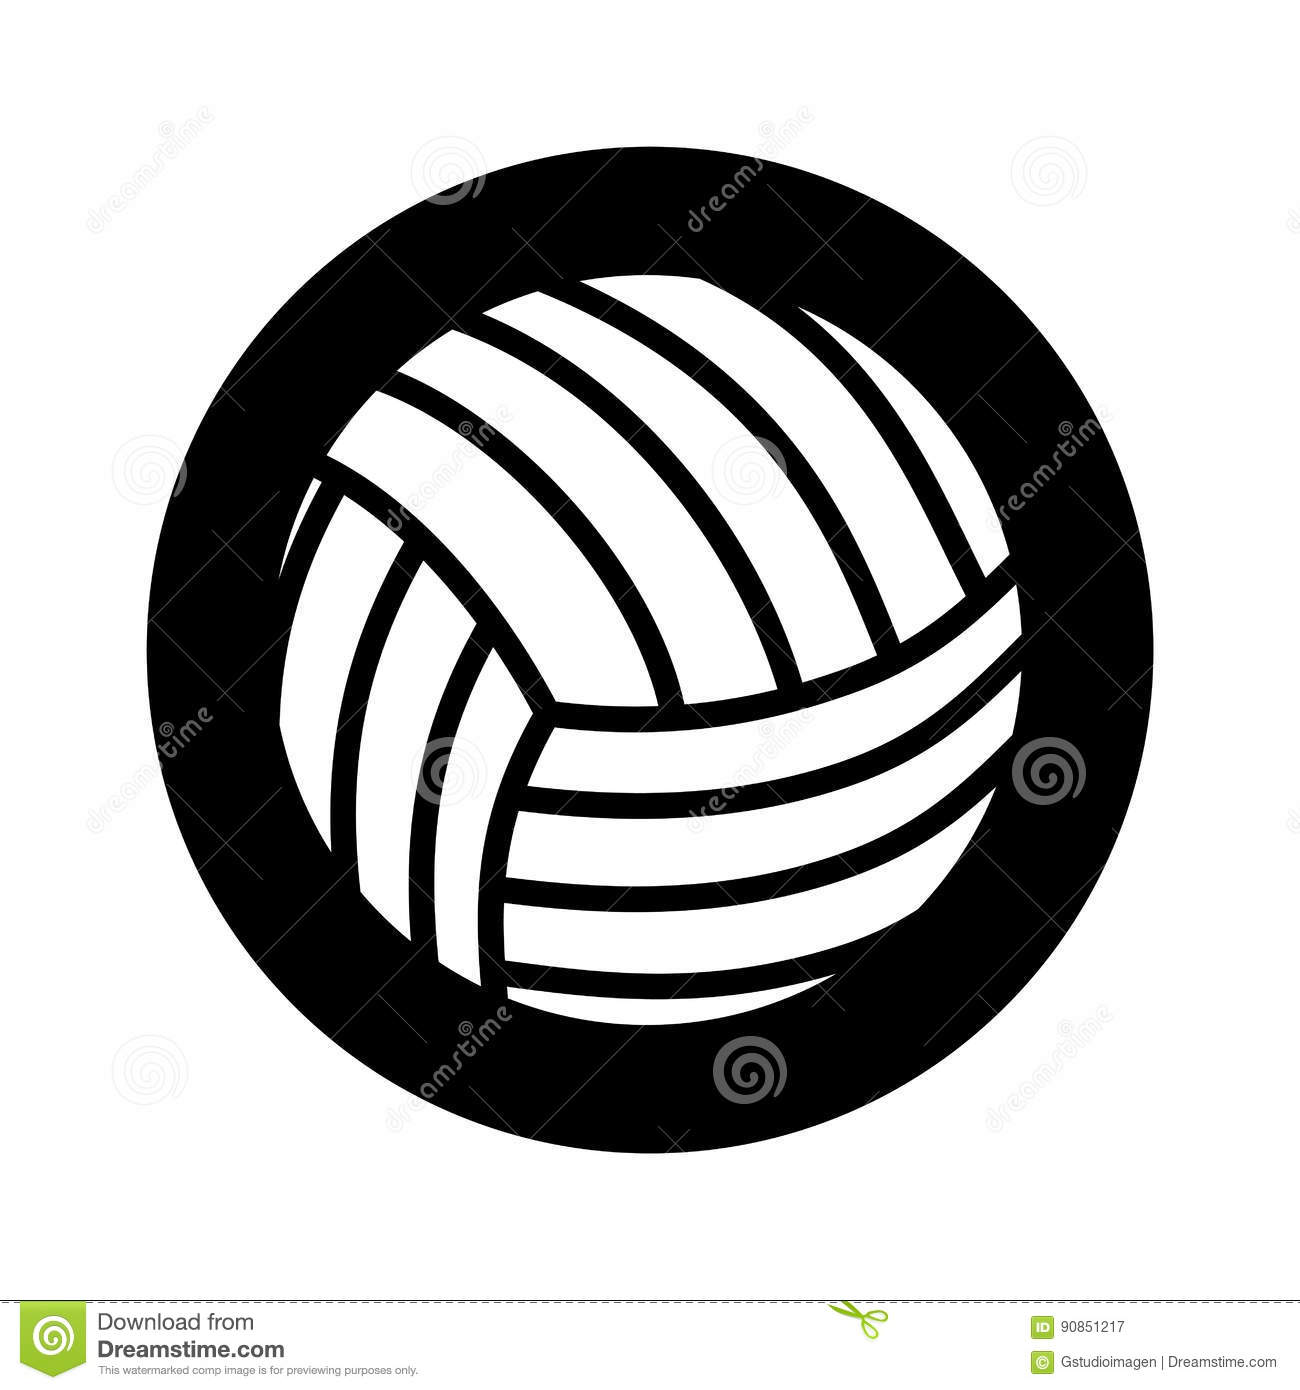 Volleyball Sport Isolated Icon Stock Vector - Image: 90851217